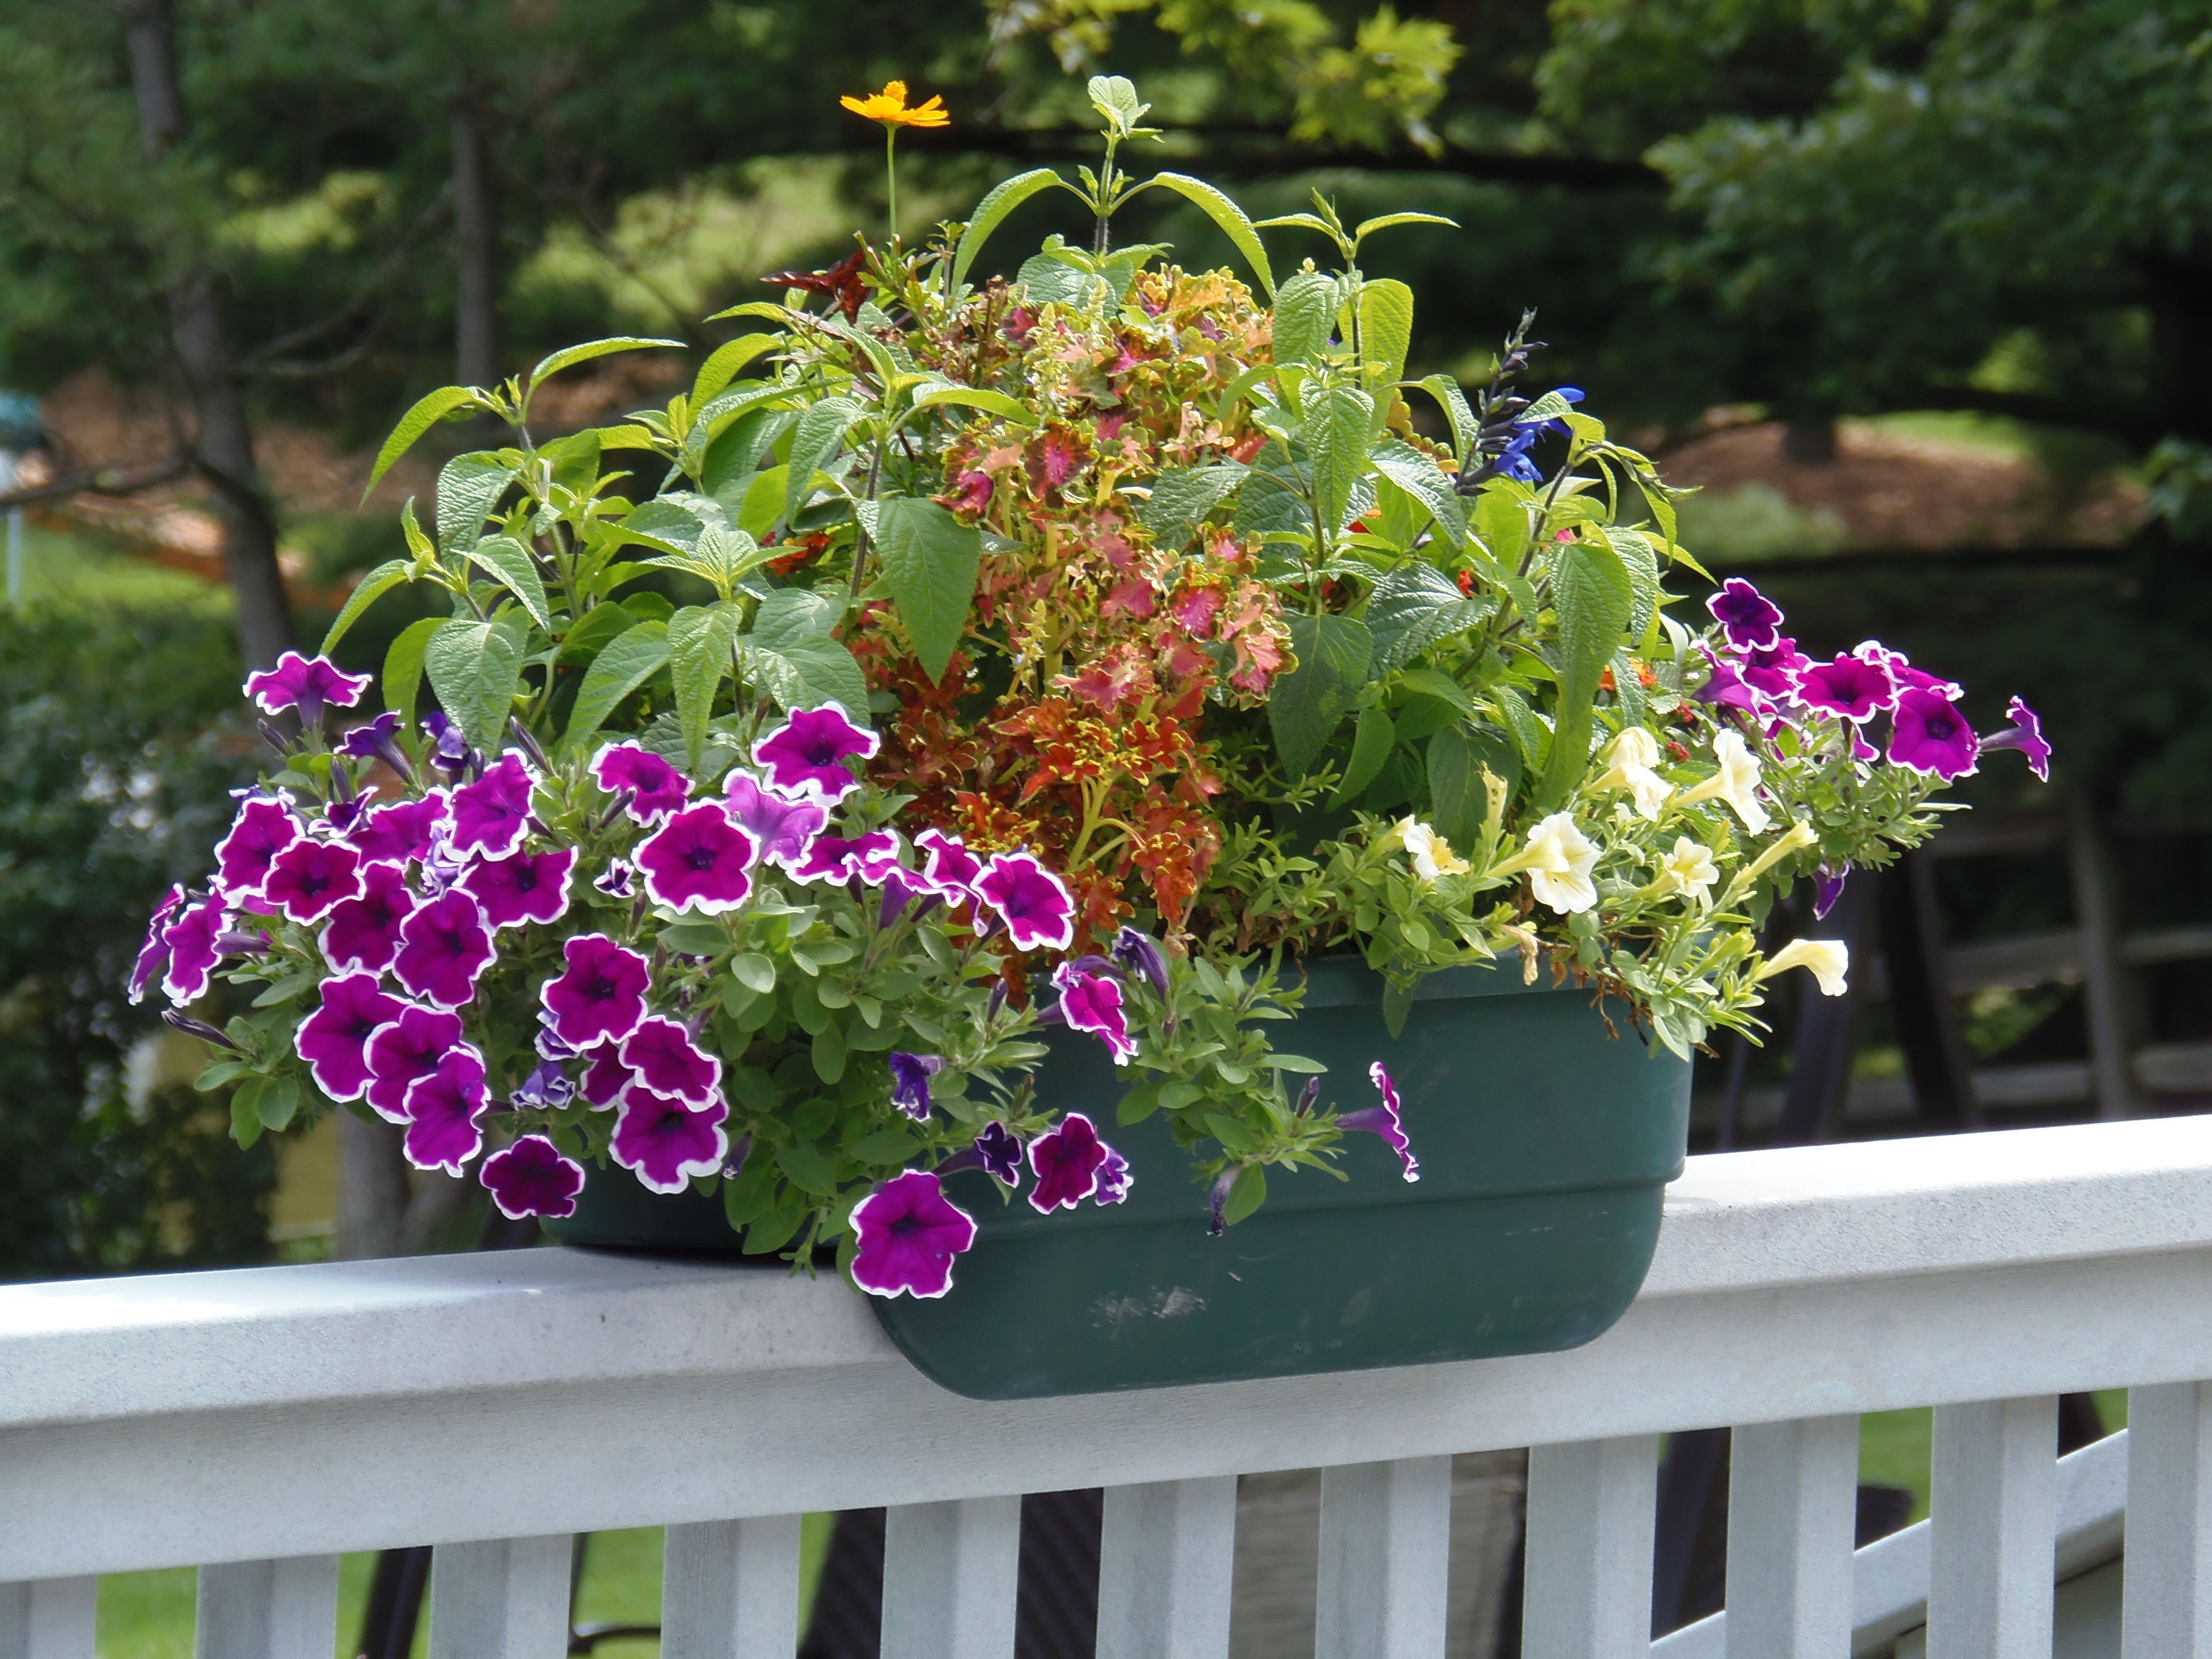 Lawn U0026 Garden Stylish Deck Railing Planter Self Watering System Plastic  Material Durable Resin Construction Flower And Vegetable Box Large Planters  Deck ...